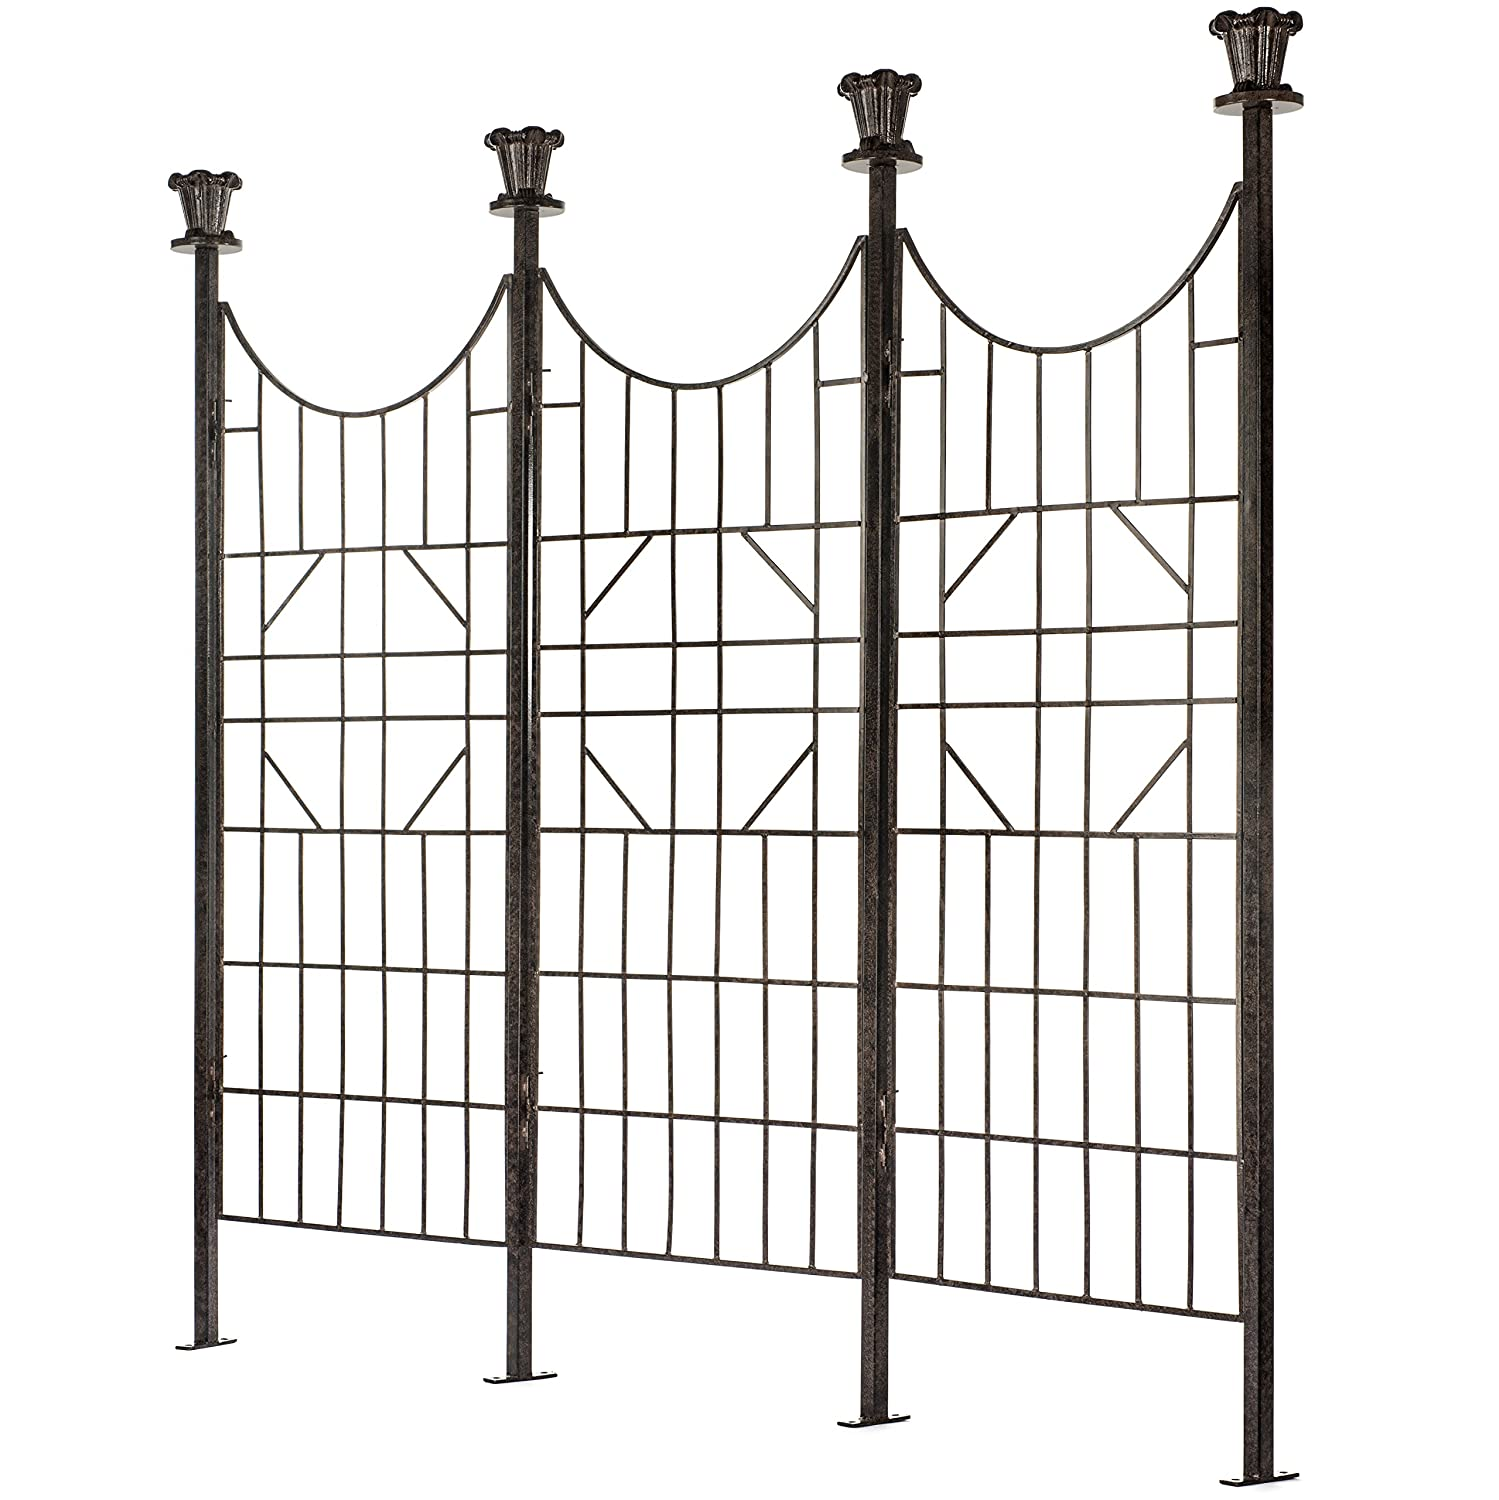 H Potter Large Iron Garden Trellis for Climbing Plants Patio Screen Deck Privacy Fence